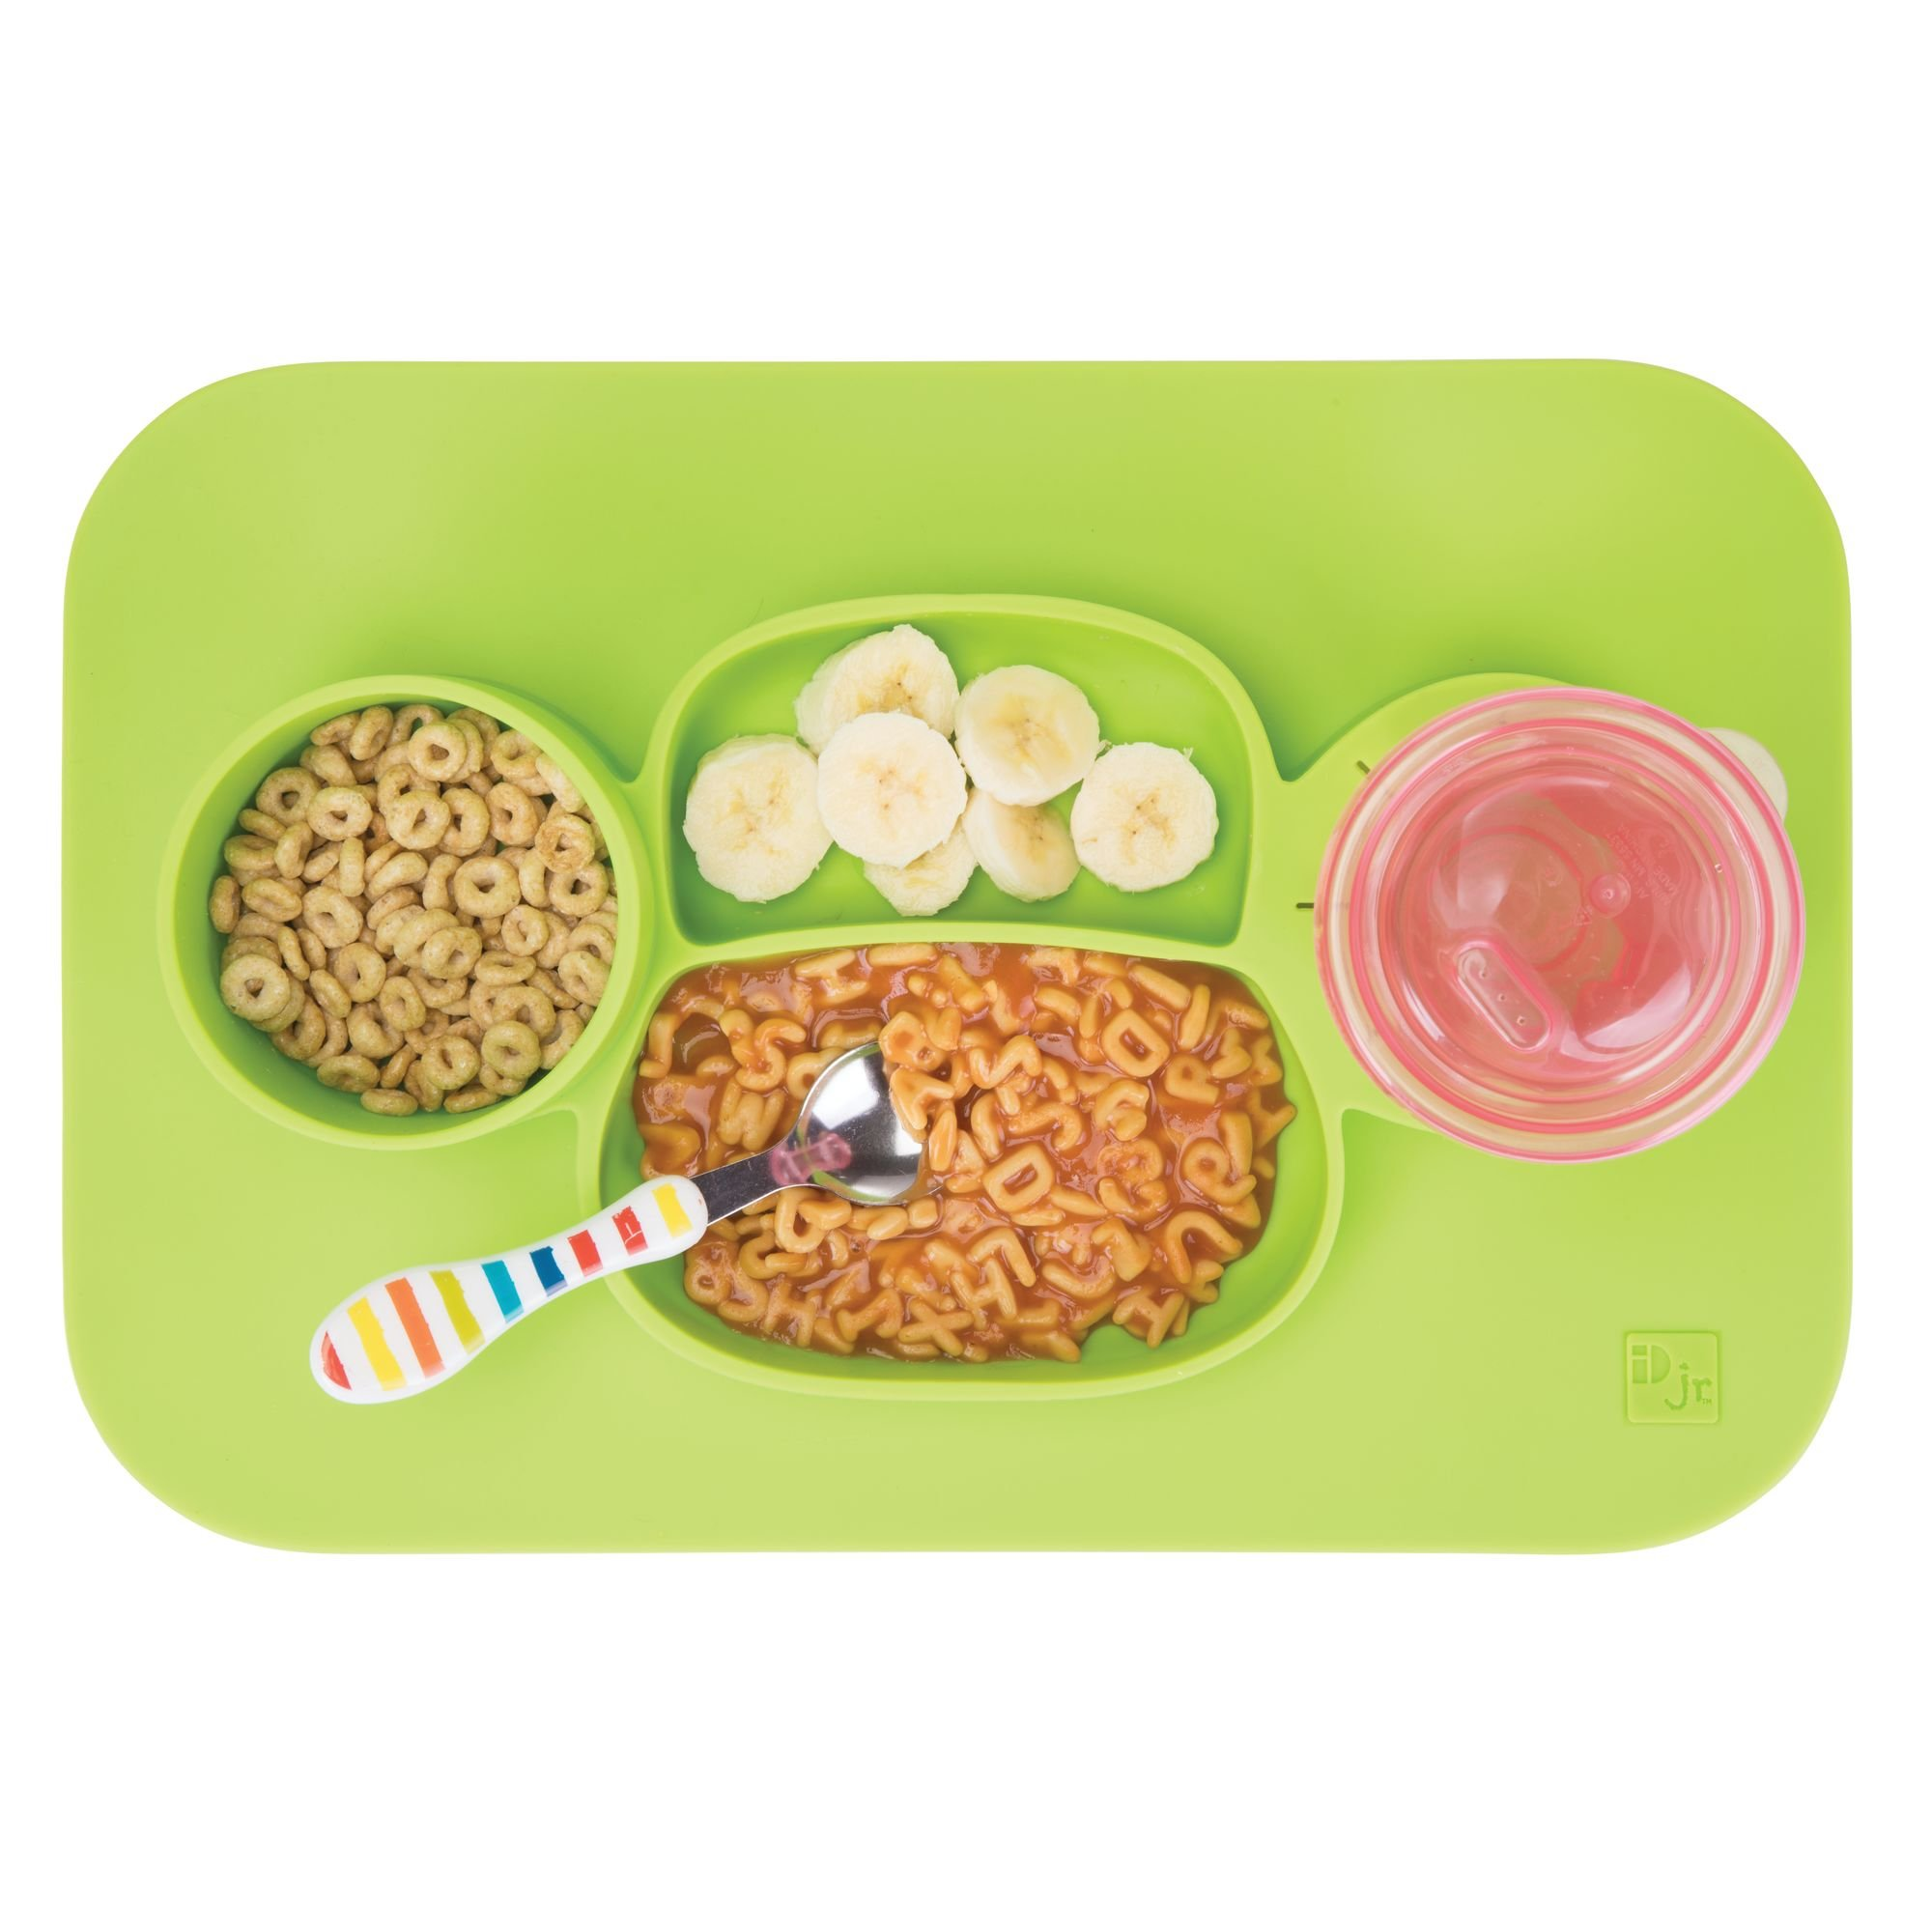 mDesign Silicone Mealtime Plate and Placemat for Babies, Toddlers, Kids - BPA Free, Food Safe – Stays in Place – 4 Sections - Microwave and Dishwasher Safe, Fun Monkey Design, Large, Lime Green